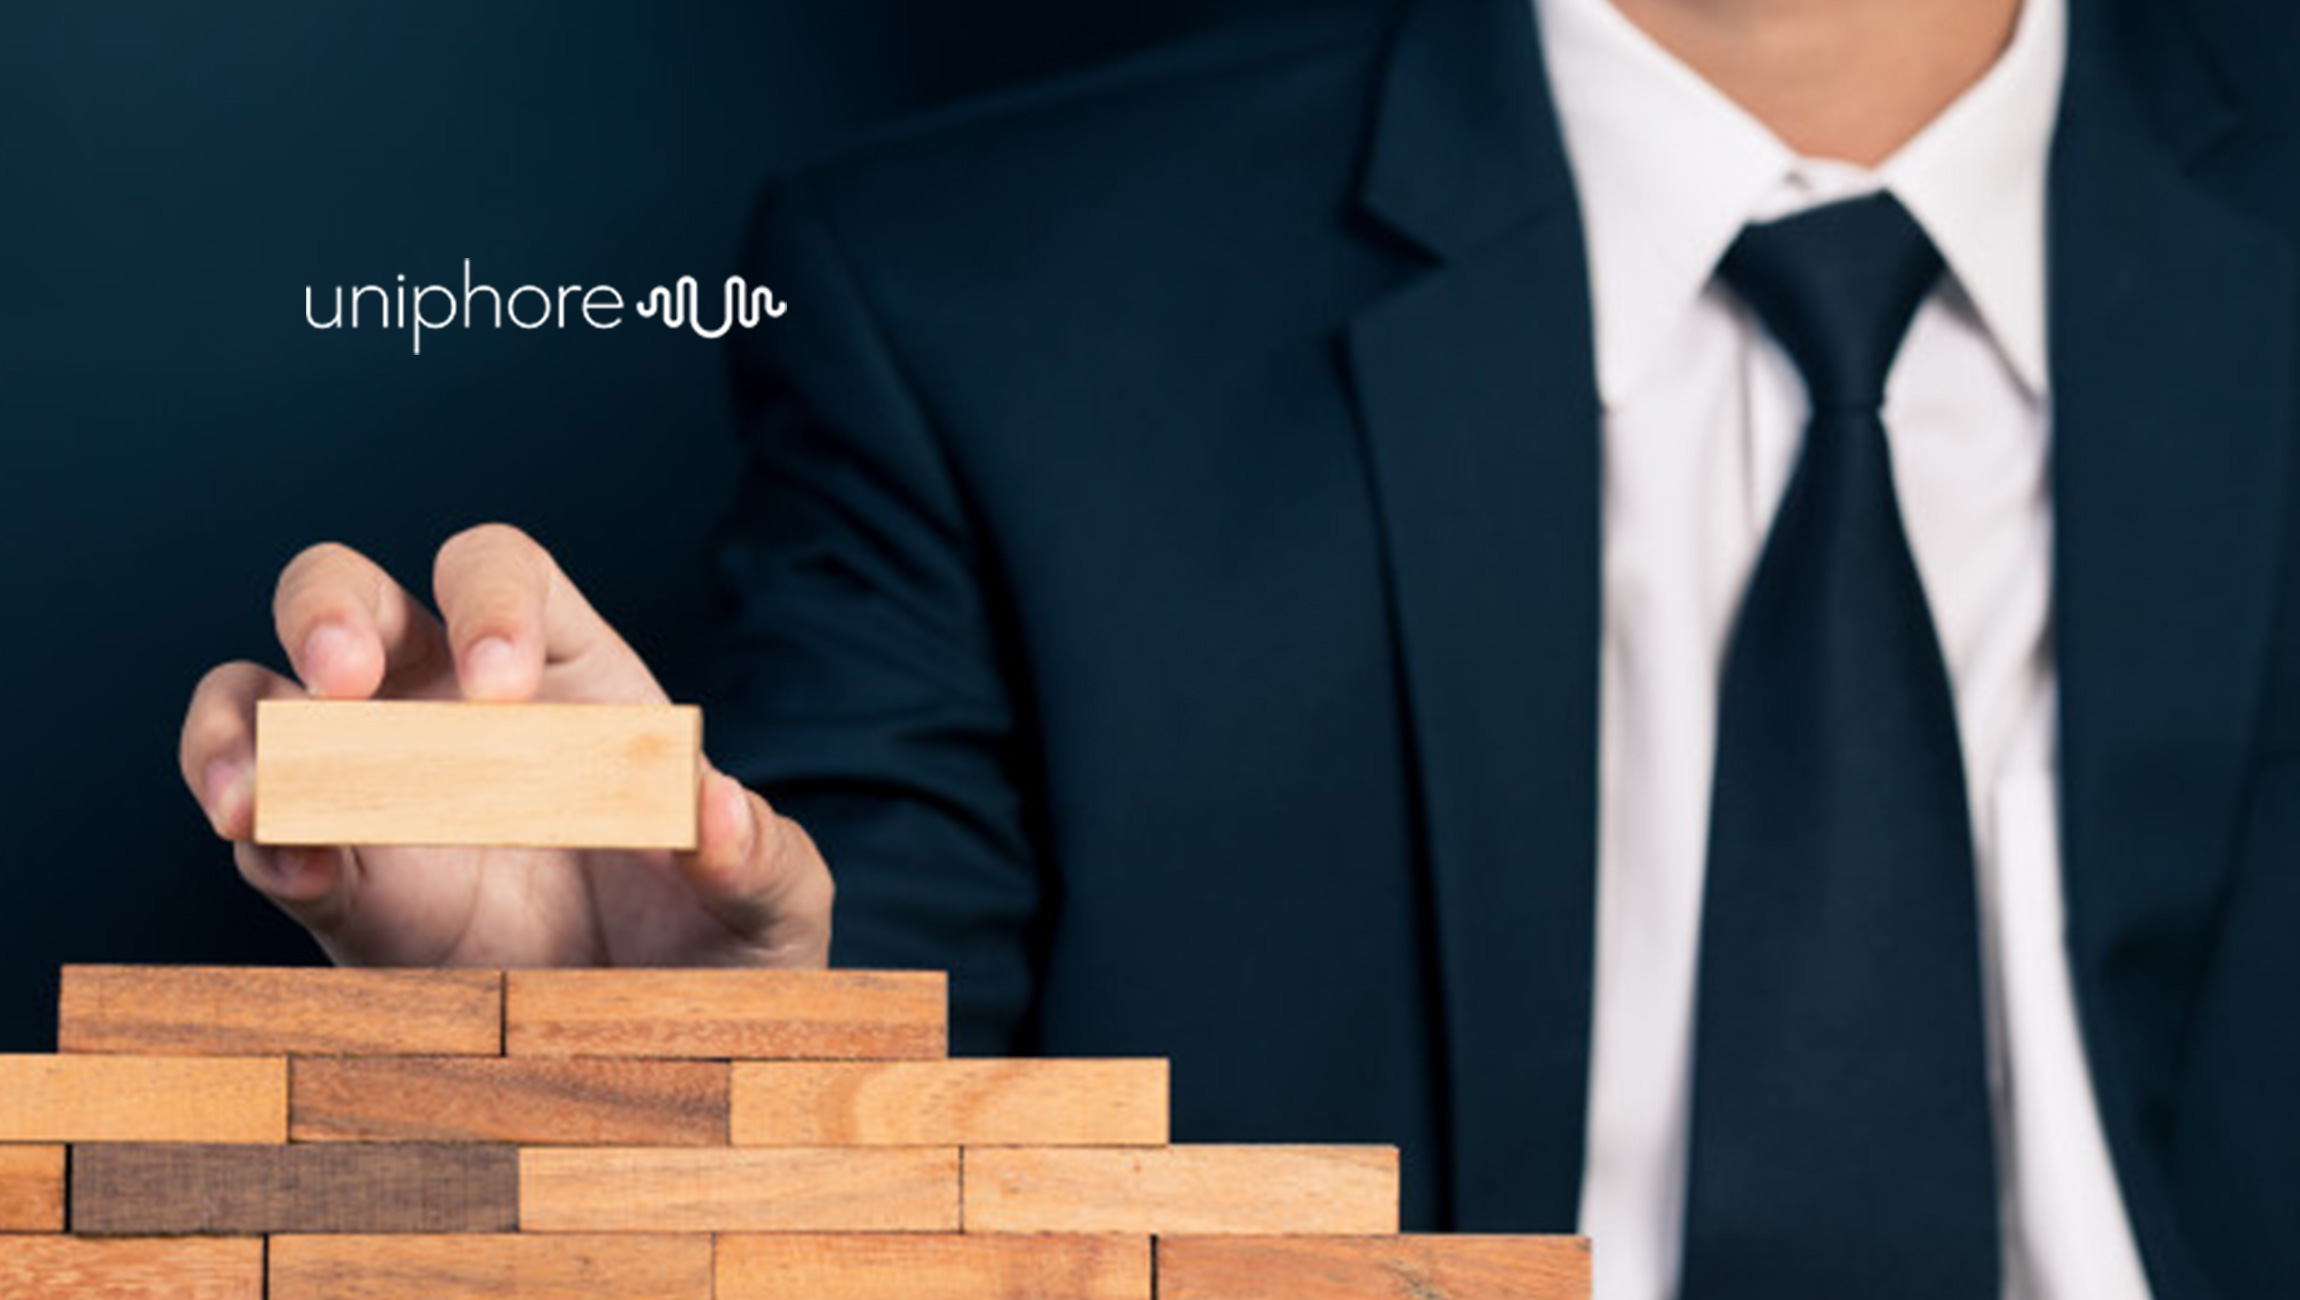 Uniphore Seeing Momentum: Raises $51 Million in Series C Funding Led by March Capital Partners